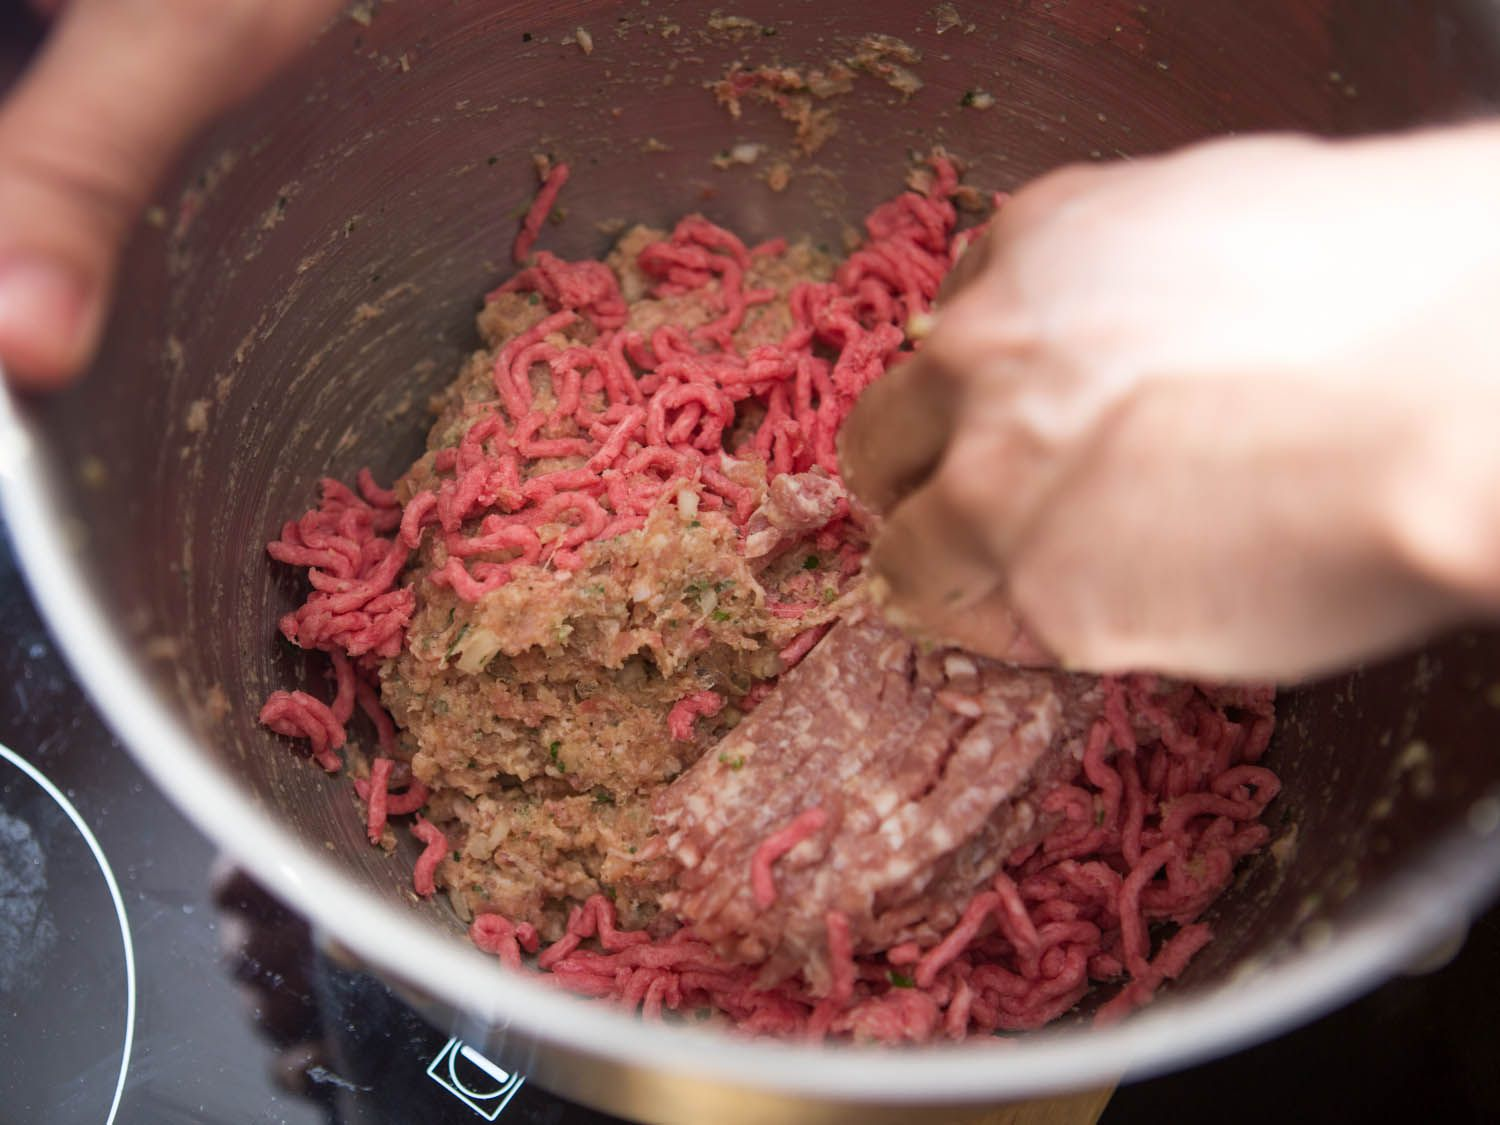 Using hands to mix in ground meat to emulsified meat and flavorings mixture for meatballs.